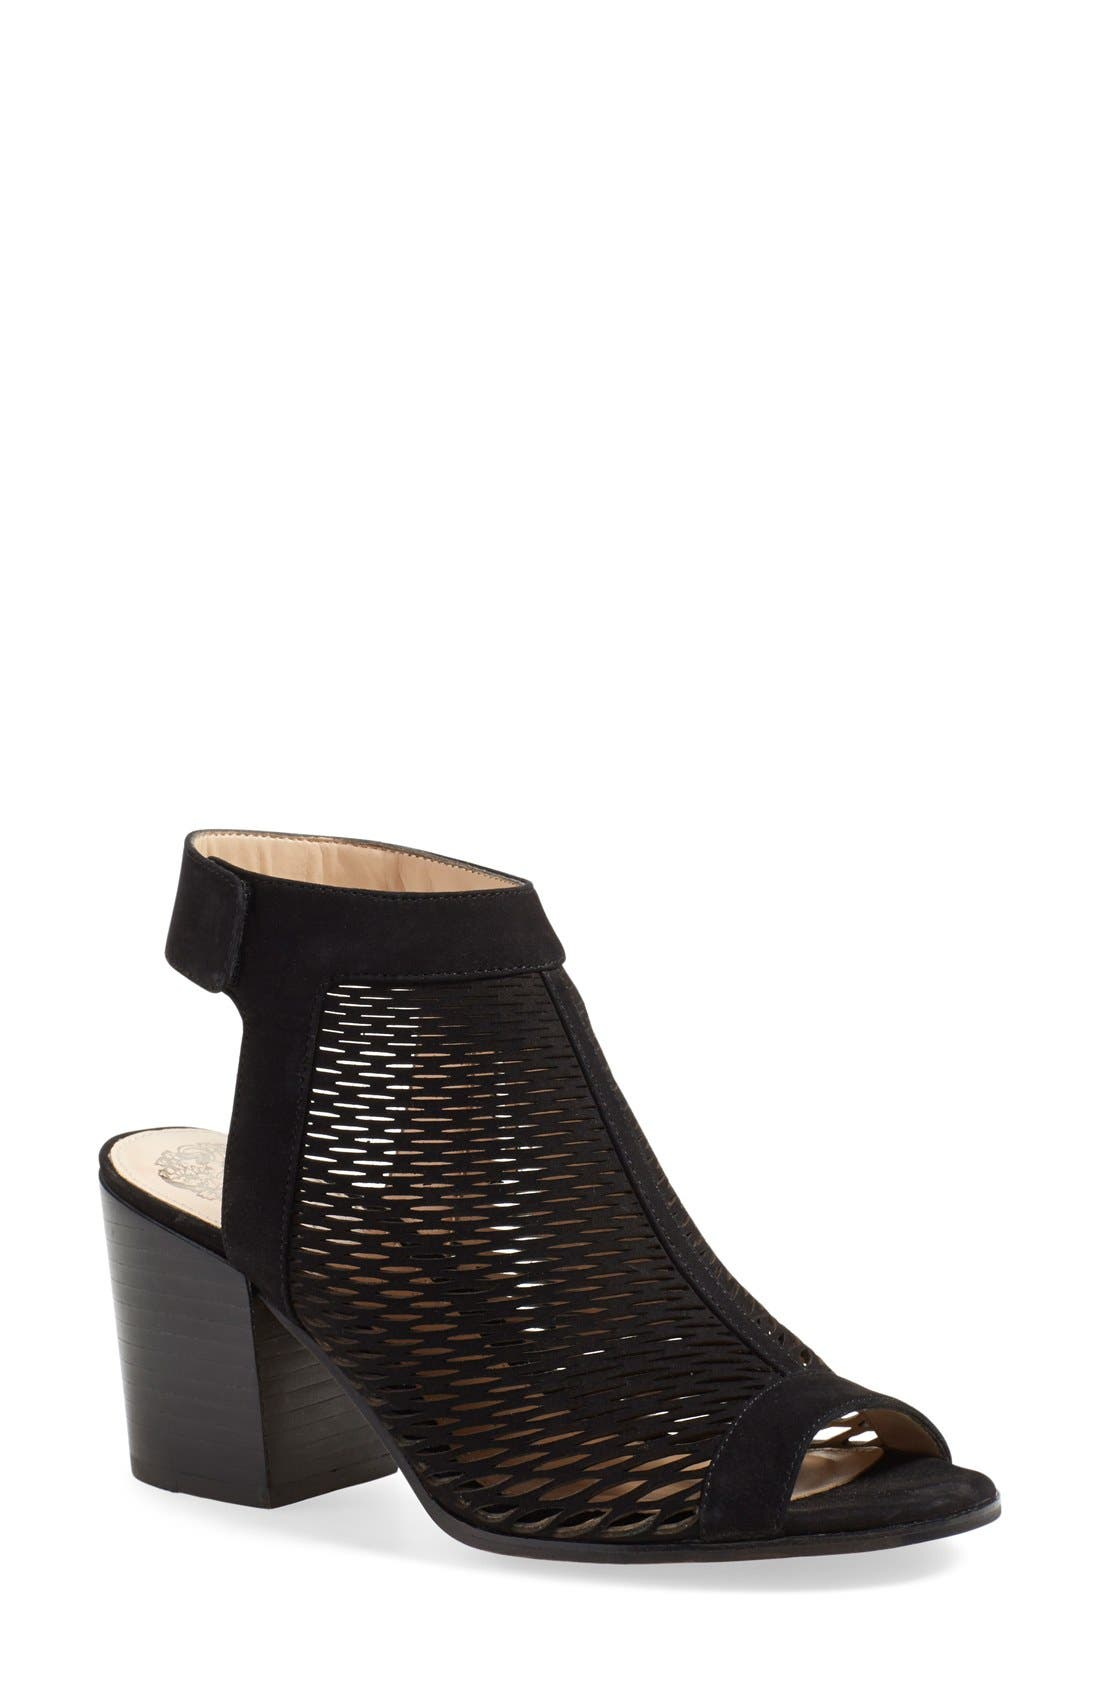 Main Image - Vince Camuto 'Lavette' Perforated Peep Toe Bootie (Women) (Nordstrom Exclusive)